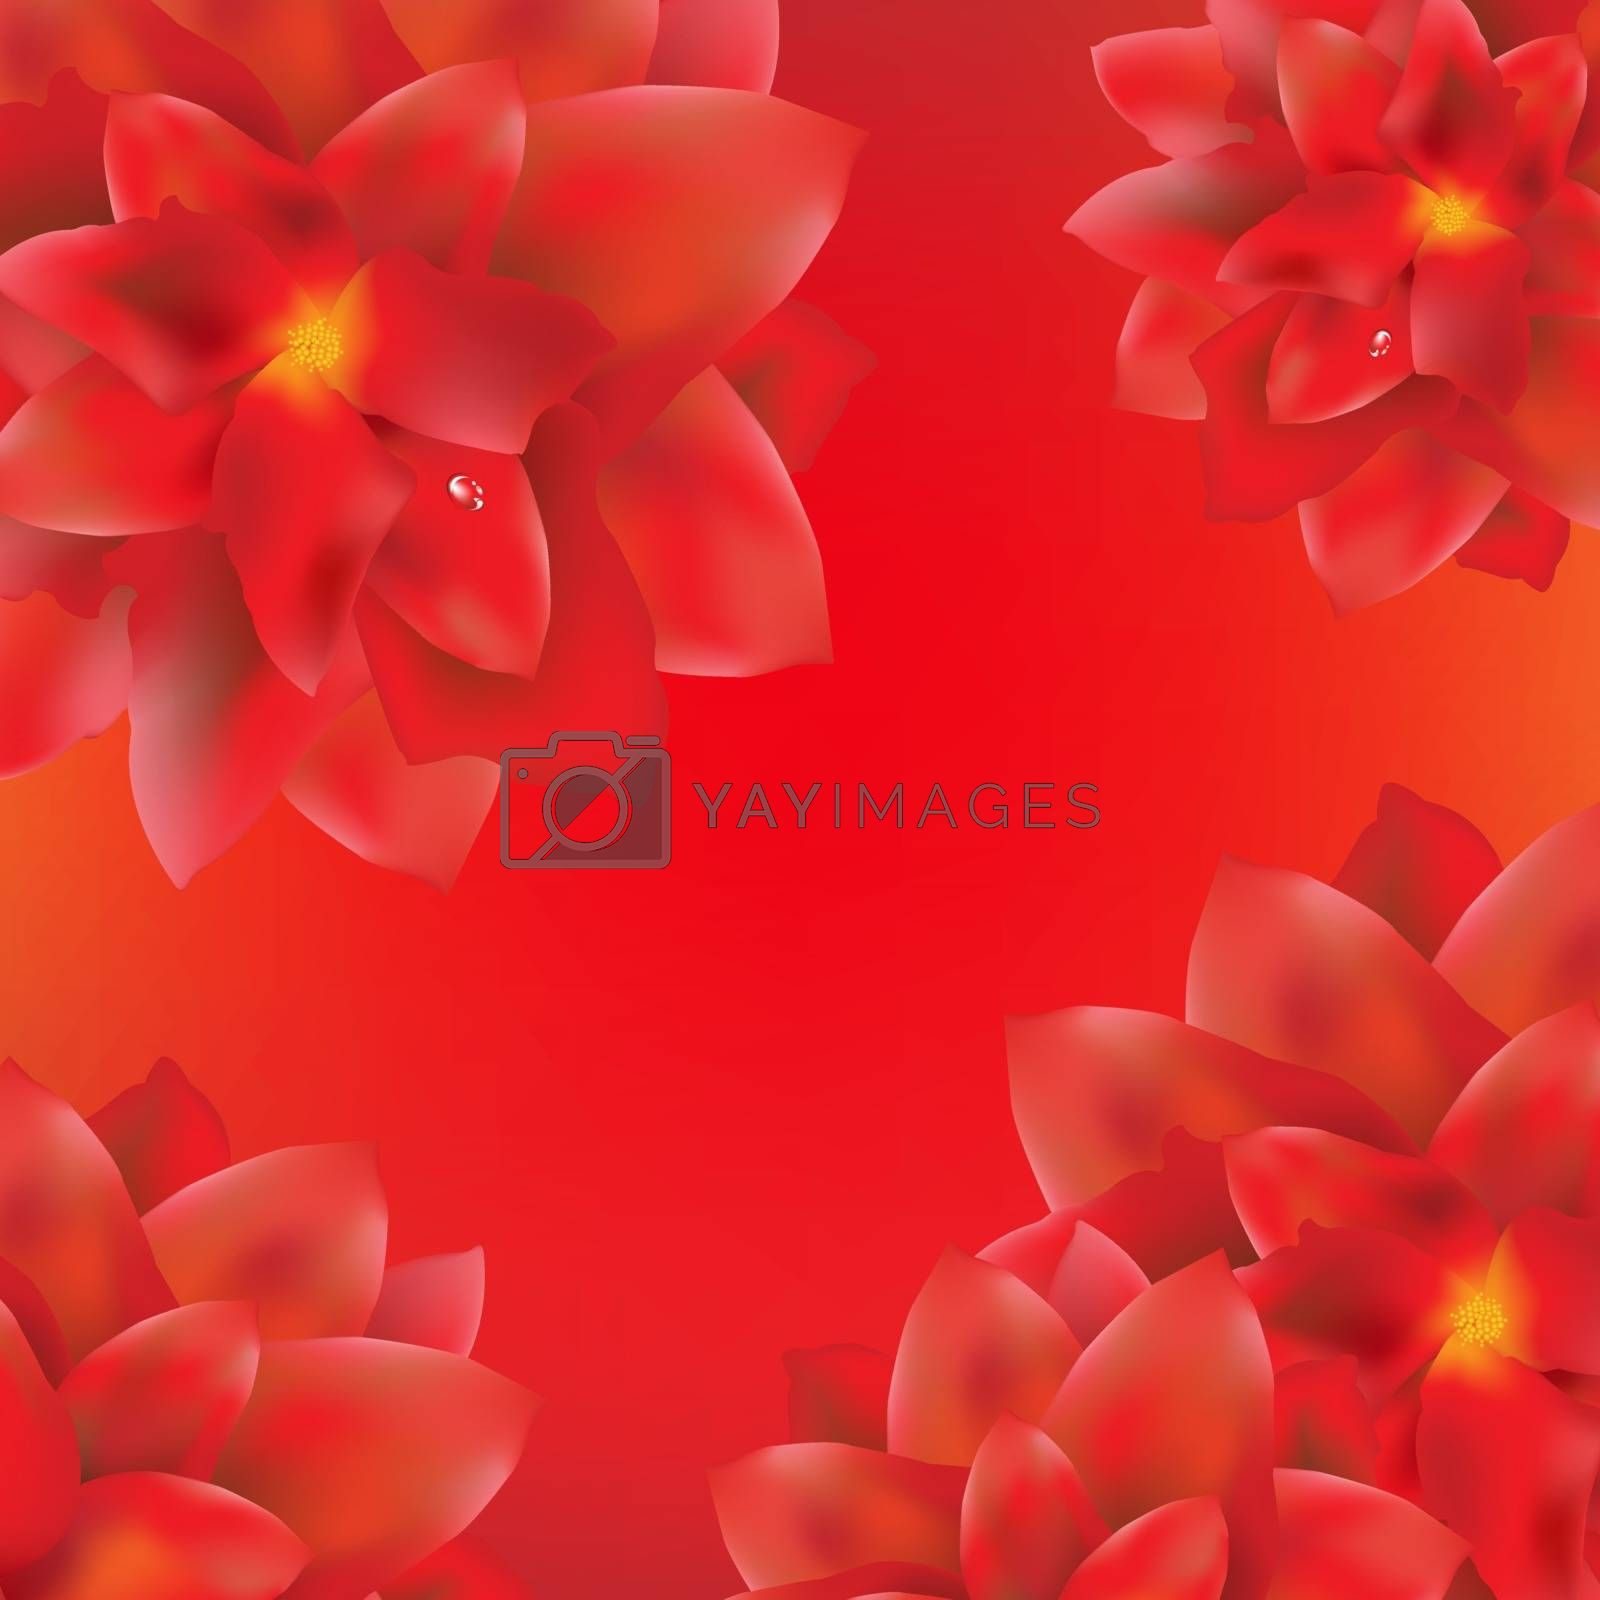 Card With Red Flowers Border by barbaliss